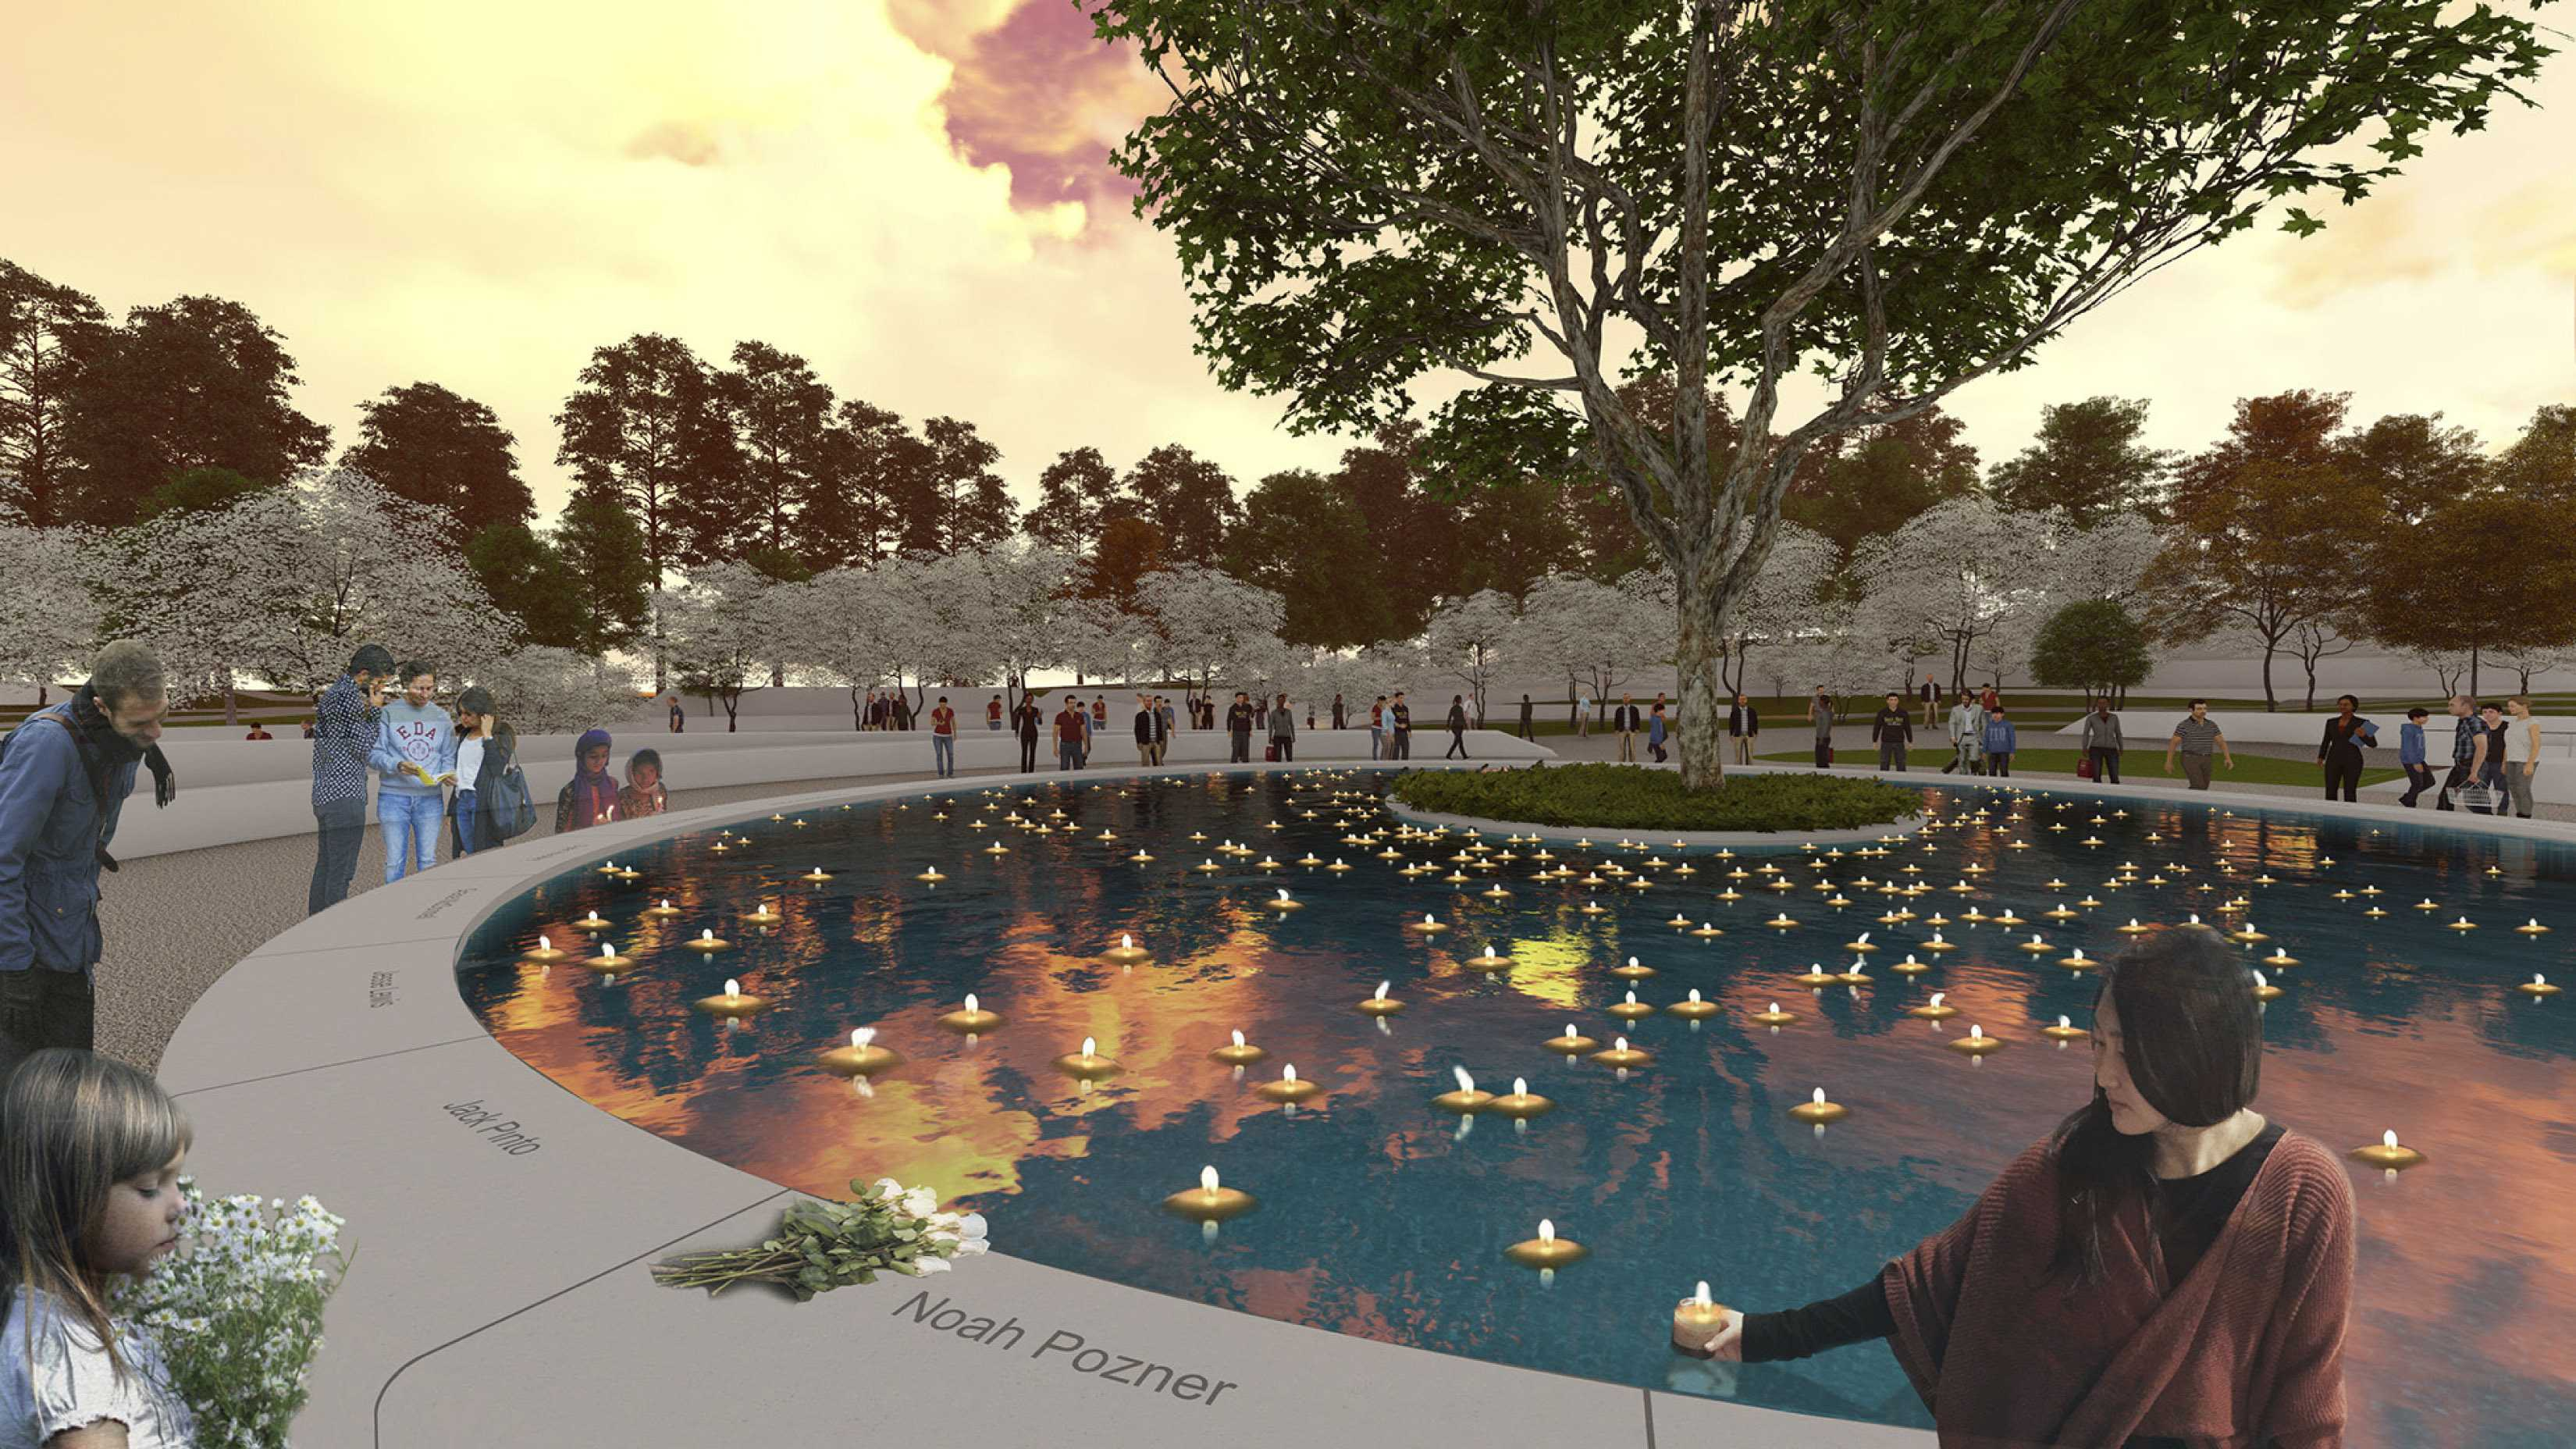 This undated image provided by the Sandy Hook Permanent Memorial Commission on Wednesday, Aug. 8, 2018 shows the design for a permanent memorial to honor the 26 people killed in the 2012 shooting at the Sandy Hook Elementary School in Newtown, Conn. The memorial would be located on a donated 5-acre site near the school, and is projected to be dedicated on Dec. 14, 2019, the seventh anniversary of the shooting. (Sandy Hook Permanent Memorial Commission via AP)